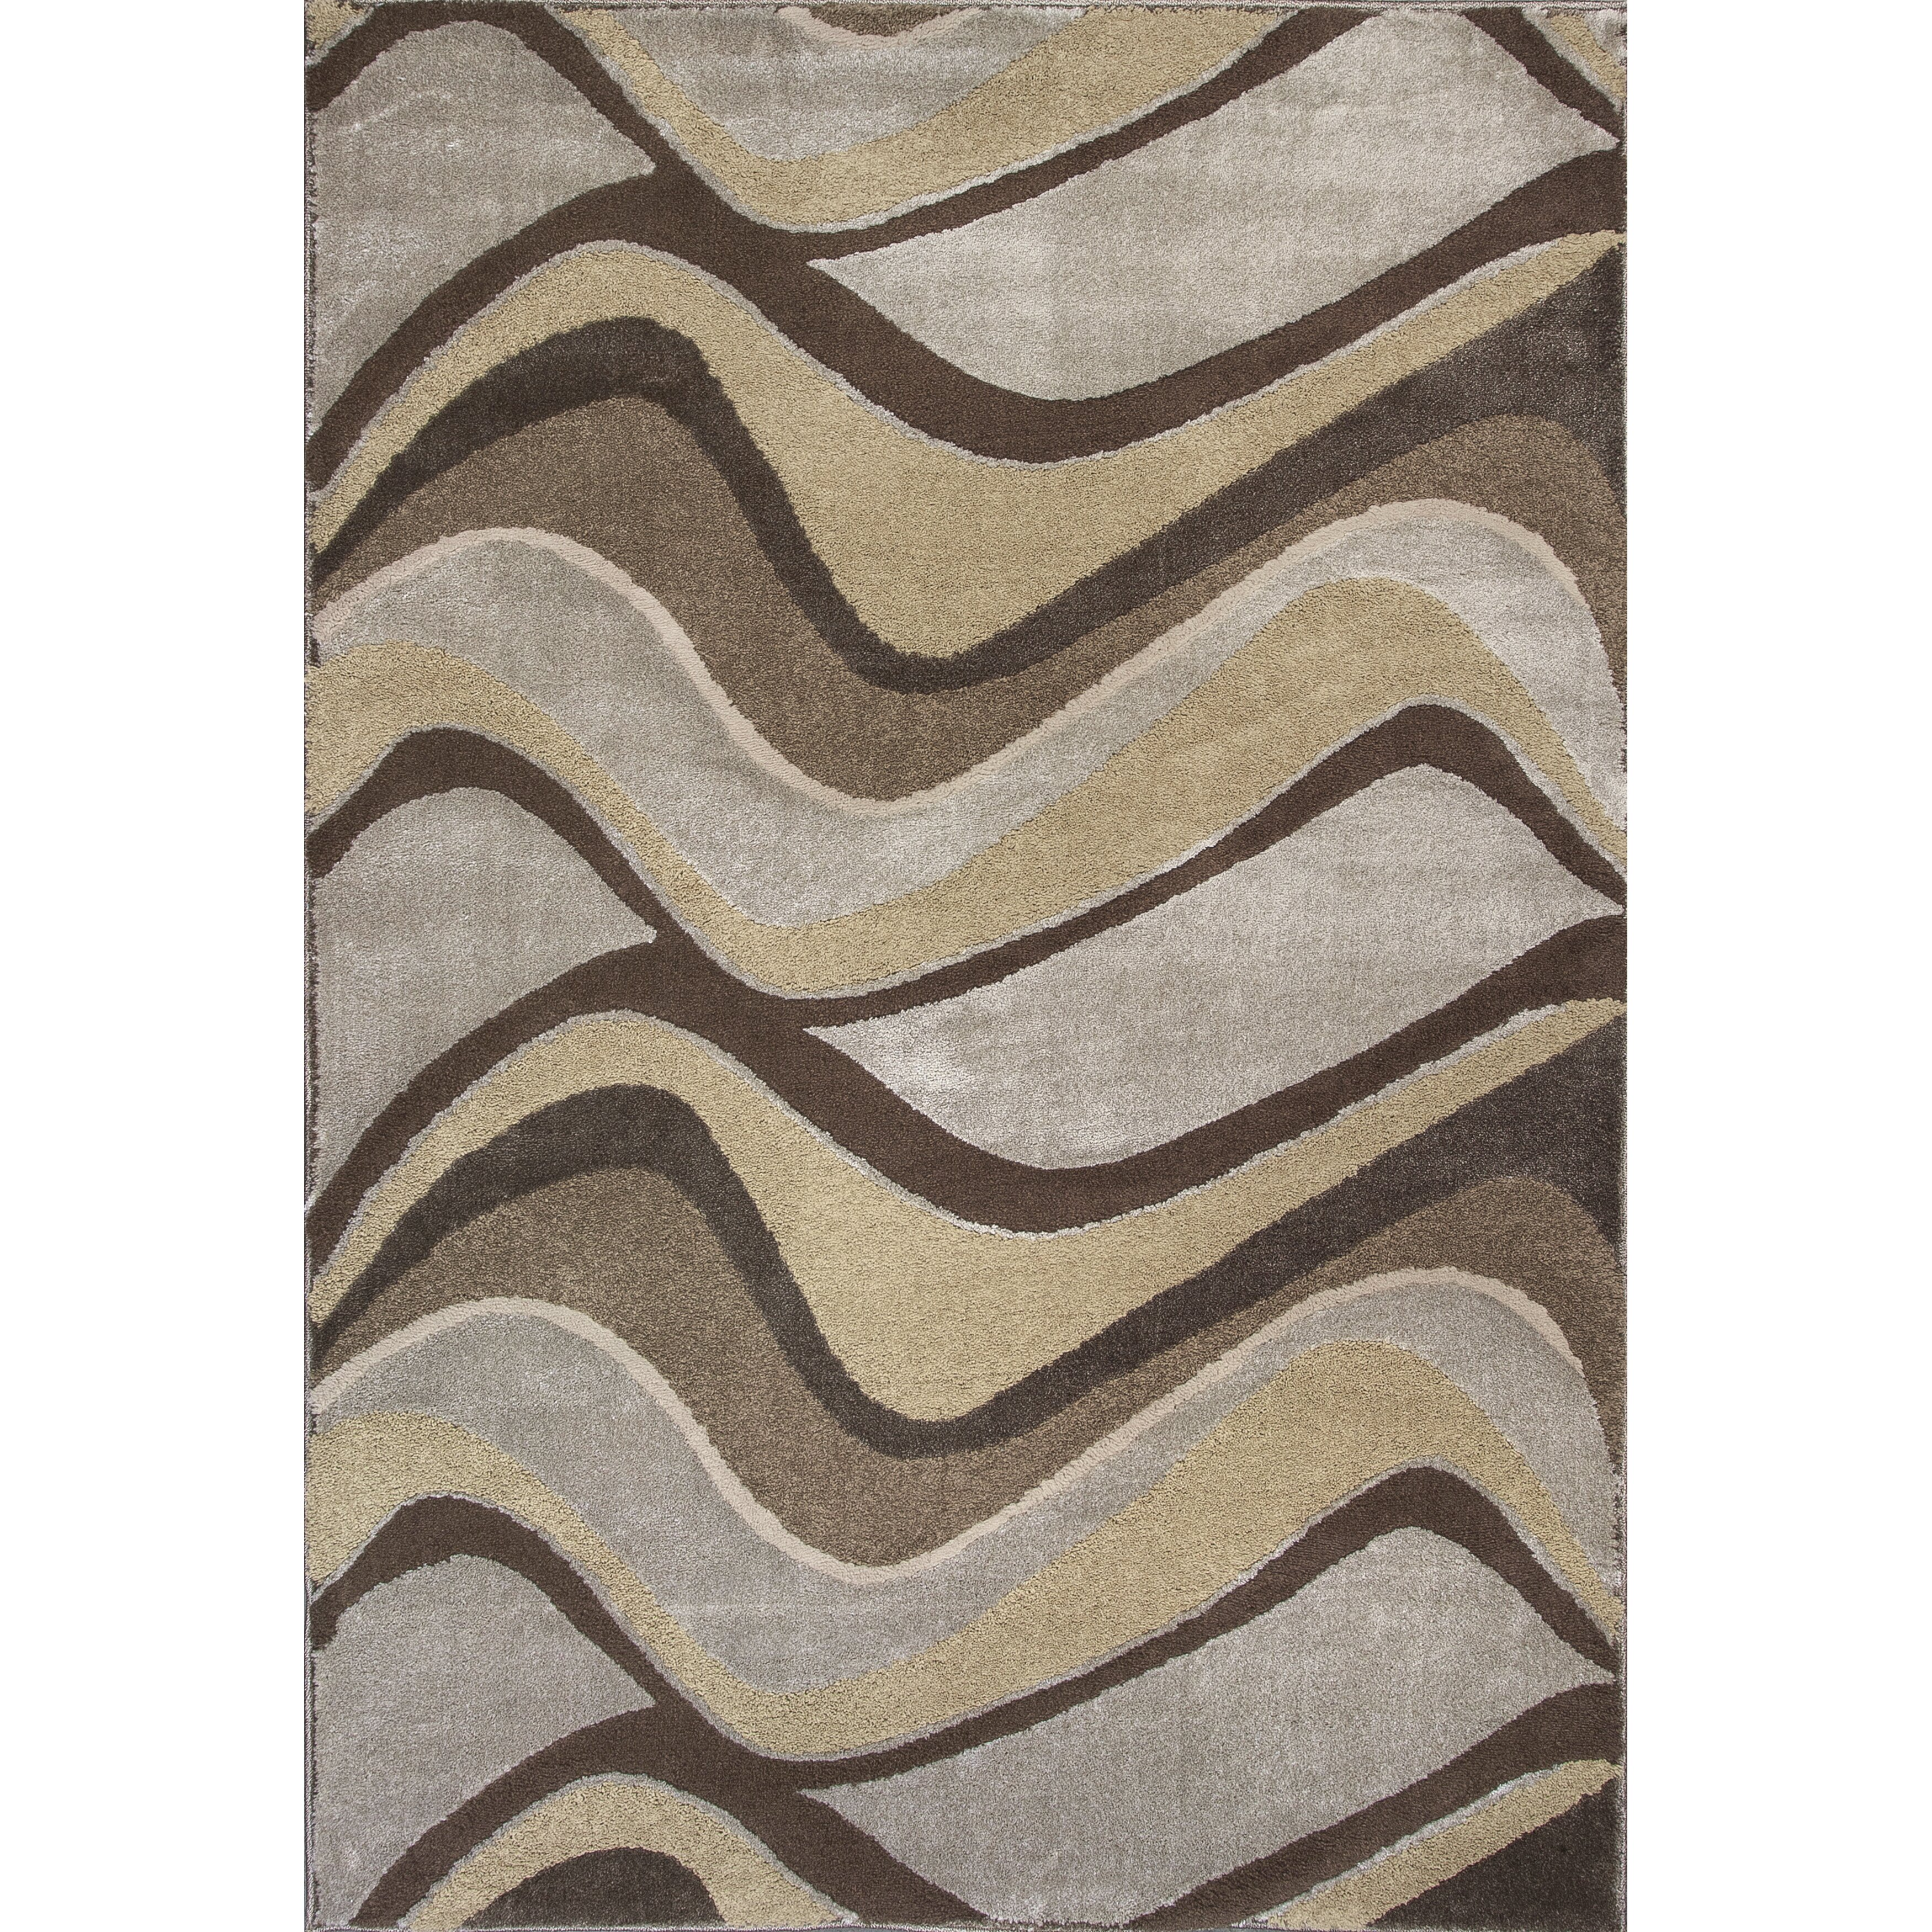 Berger paint for wall design wall paint in a drawing room gharexpert - Donny Osmond Timeless Metallic Visions Area Rug Reviews Wayfair